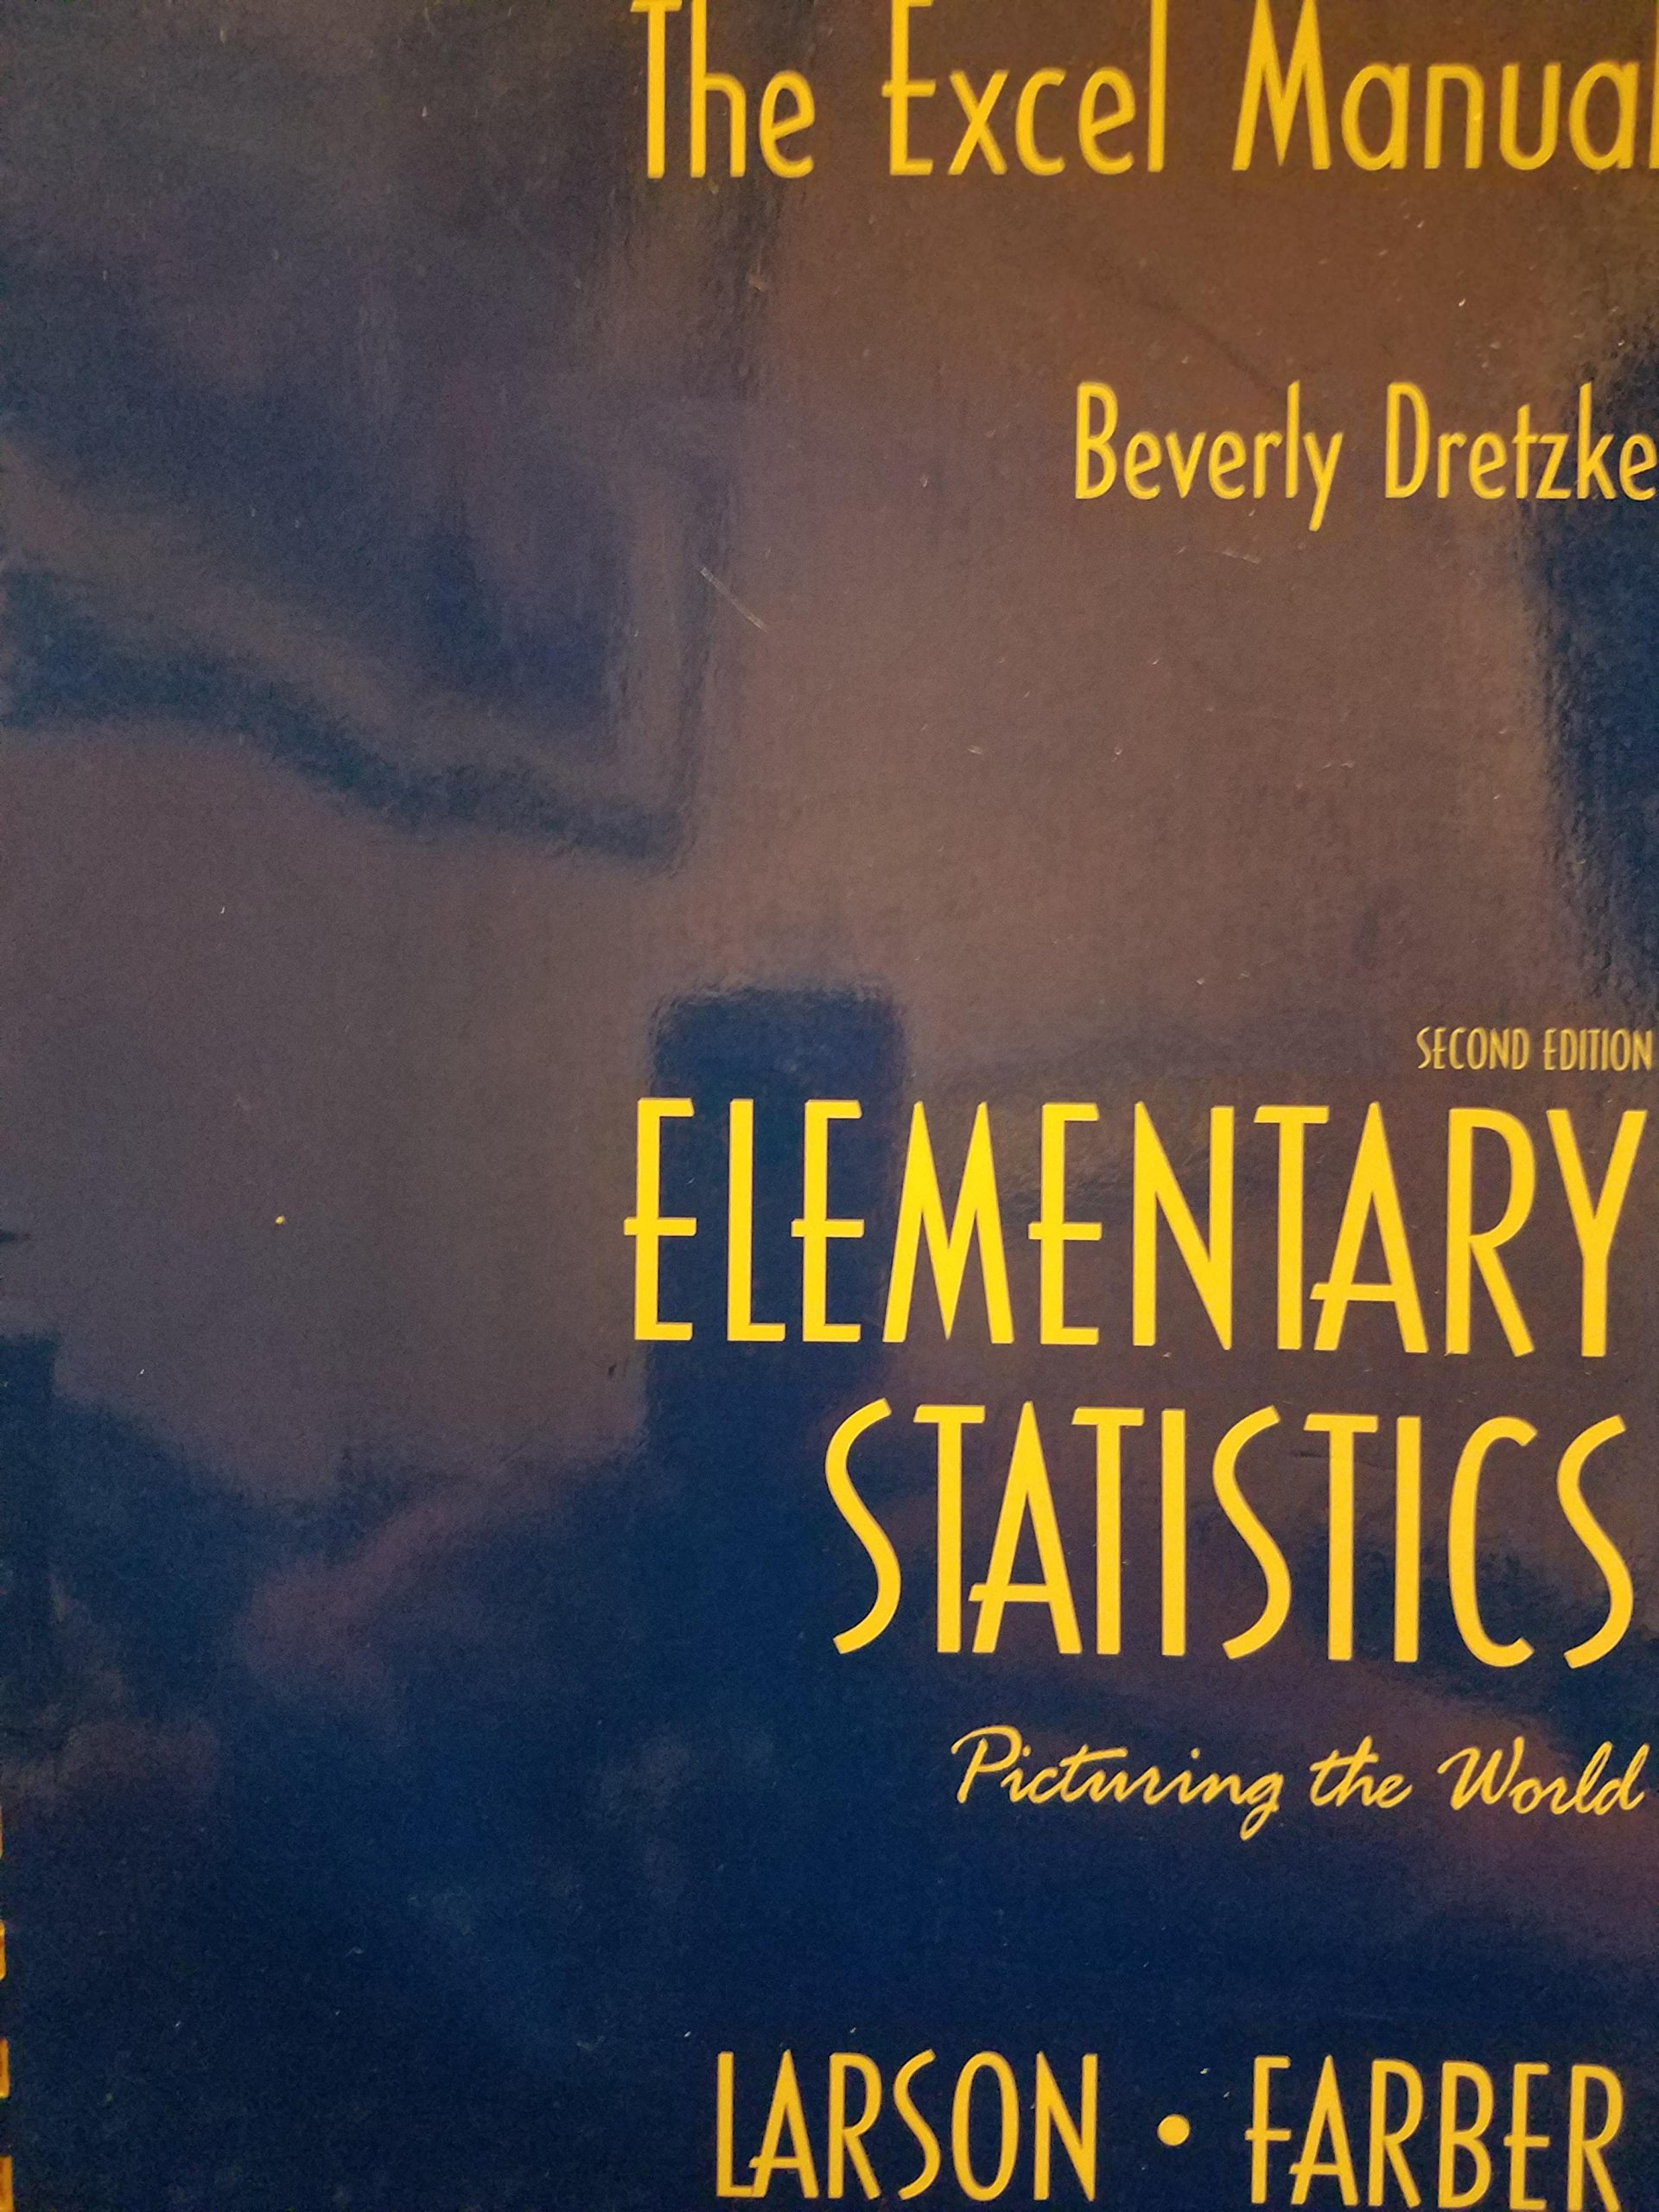 The Excel Manual to accompany Elementary Statistics: Picturing The World,  by Larson, 2nd Edition: Beverly Dretzke: 9780130659484: Amazon.com: Books